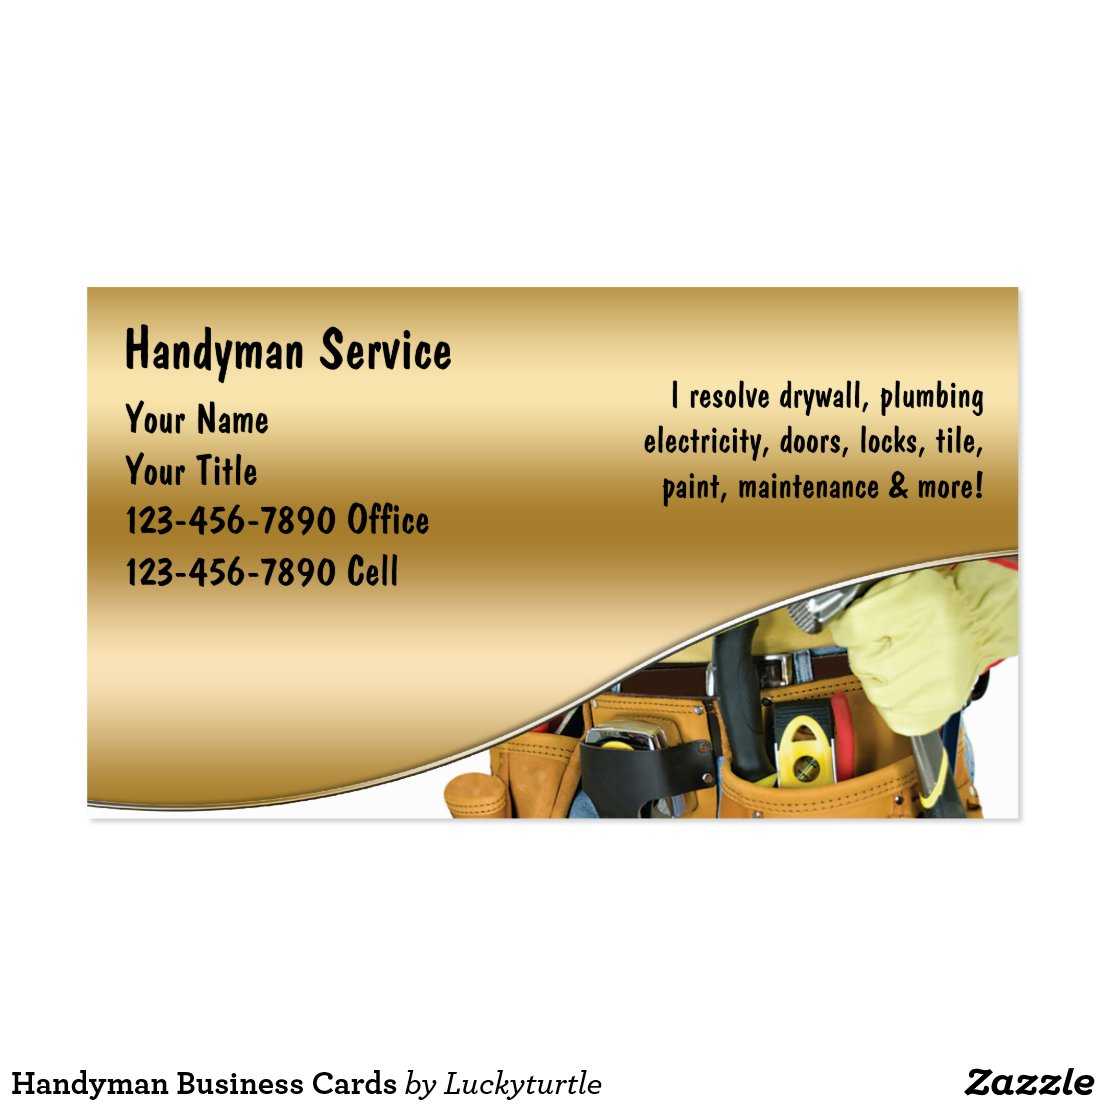 Handyman Logos For Business Cards Maintenance And